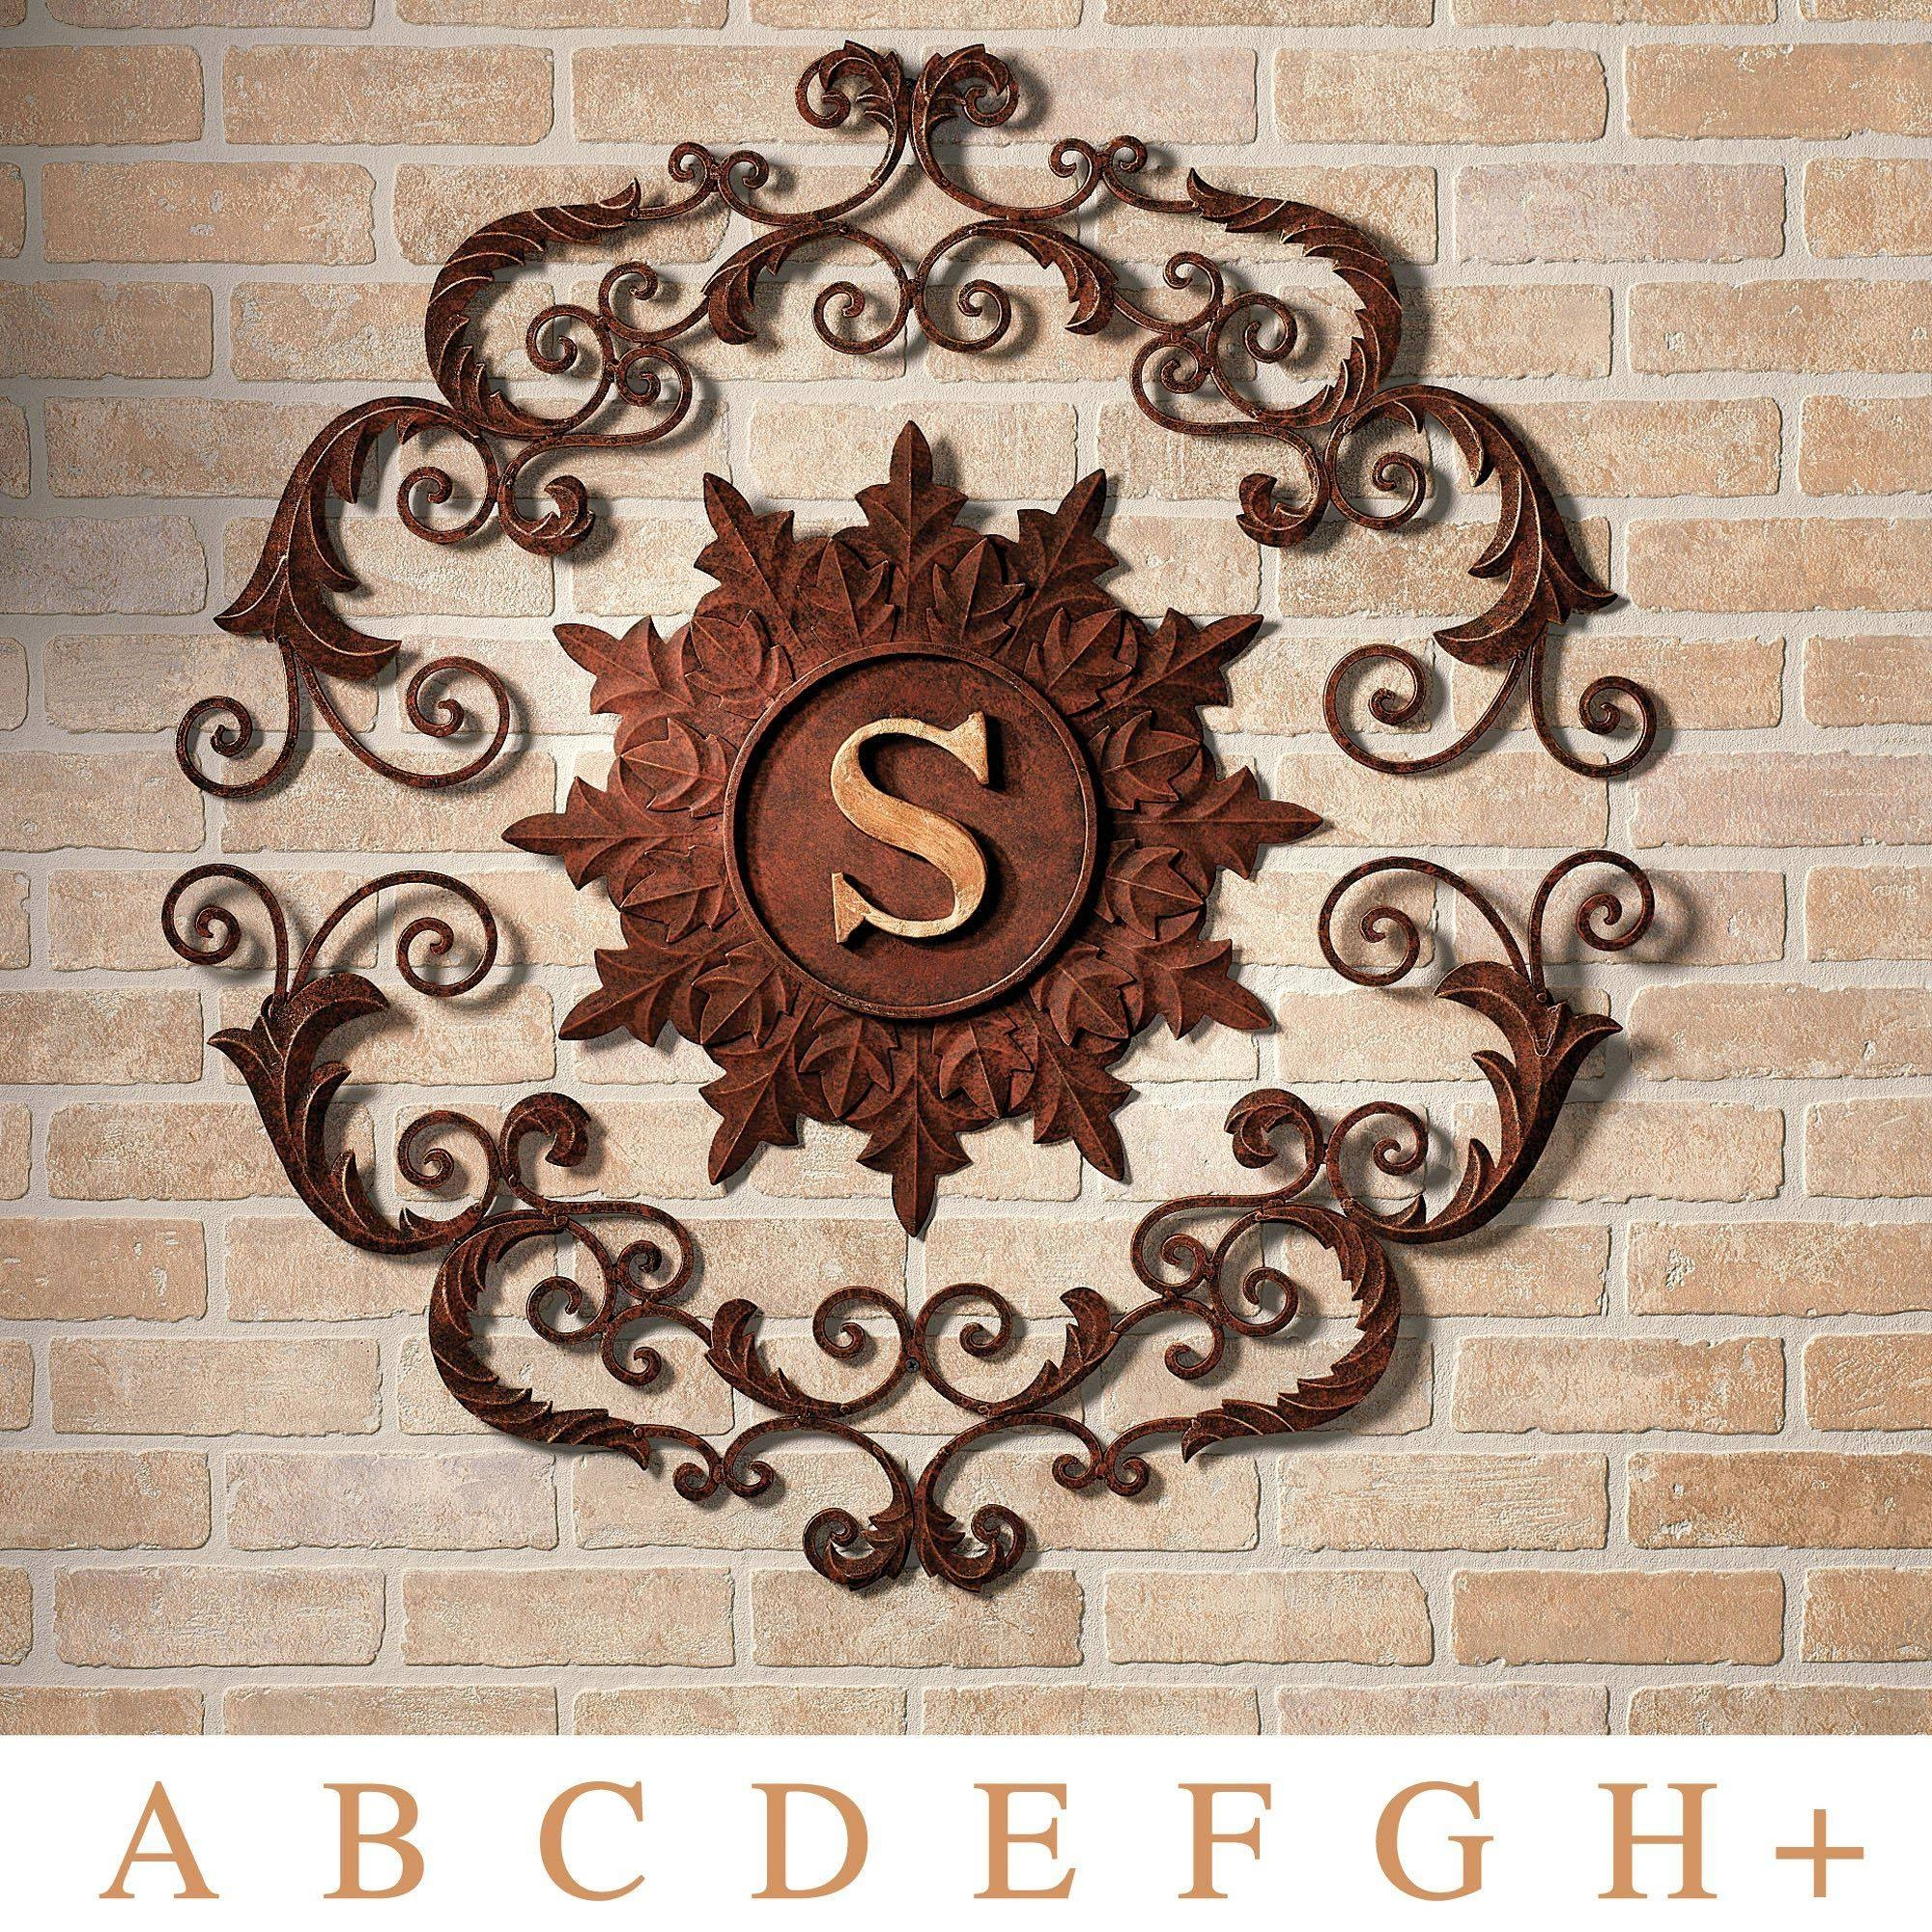 Kingston Monogram Metal Wall Grille Pertaining To Latest Outside Metal Wall Art (Gallery 6 of 20)